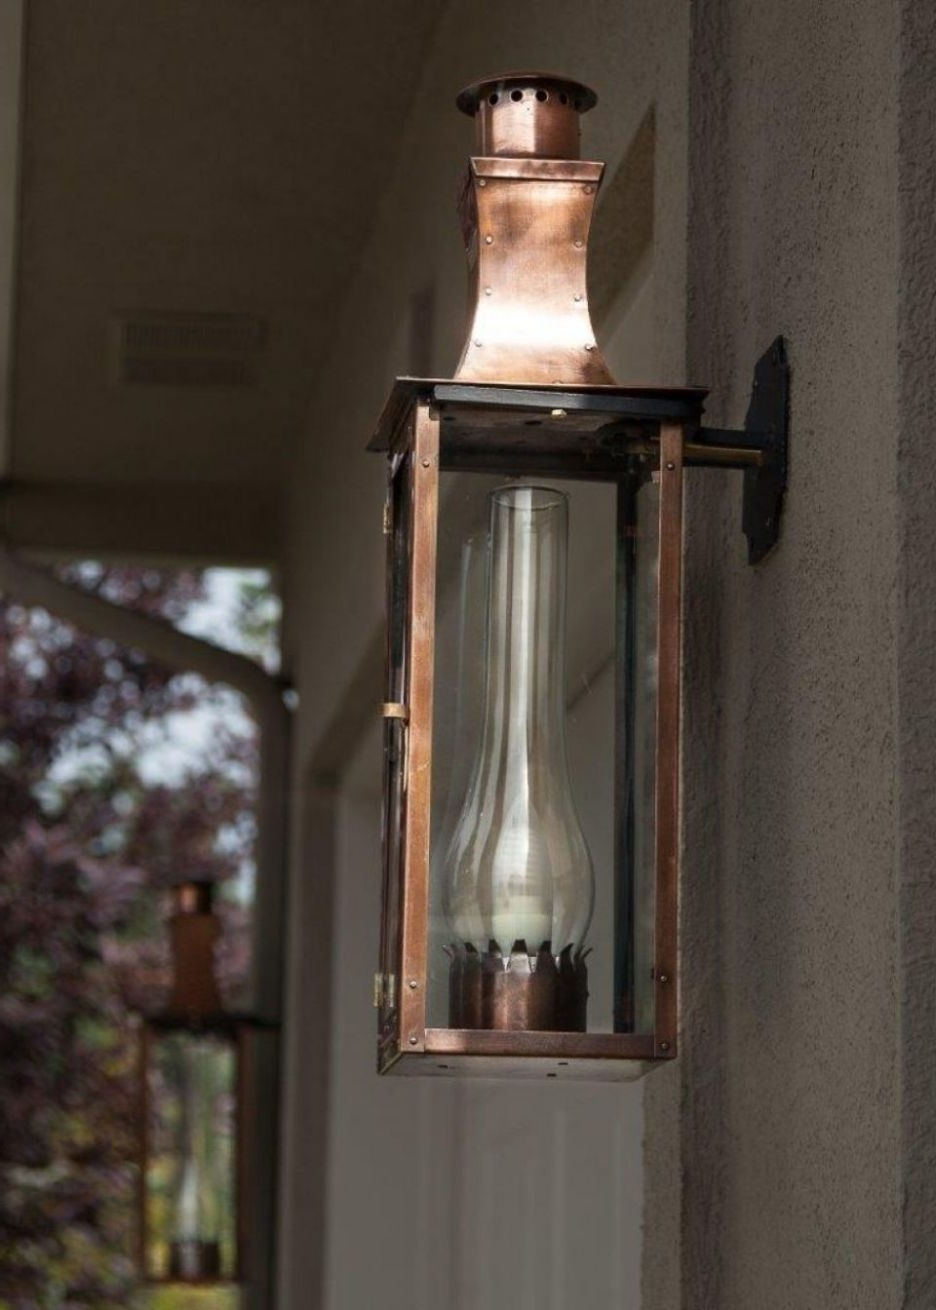 Accessories: Cozy Wall Mounted Glass Shade In Bronze Frame Gas Torch Pertaining To Latest Outdoor Wall Gas Lights (Gallery 13 of 20)